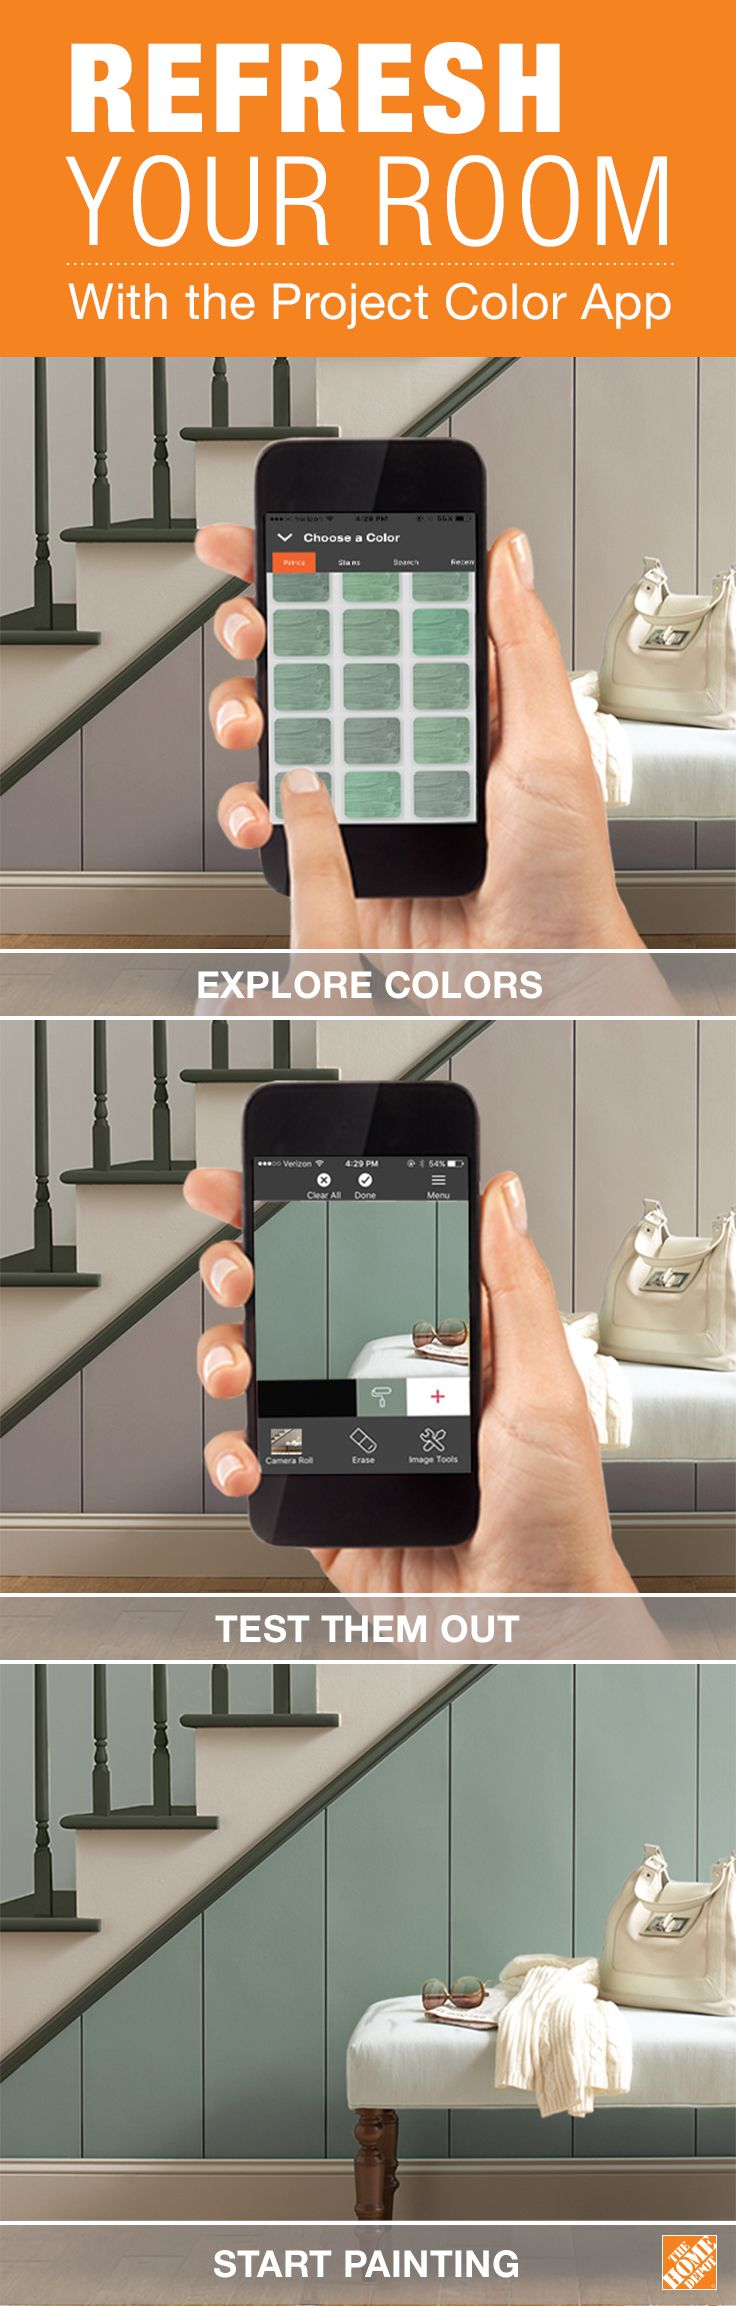 The Project Color Iphone App By The Home Depot Allows You To Try Out Paint